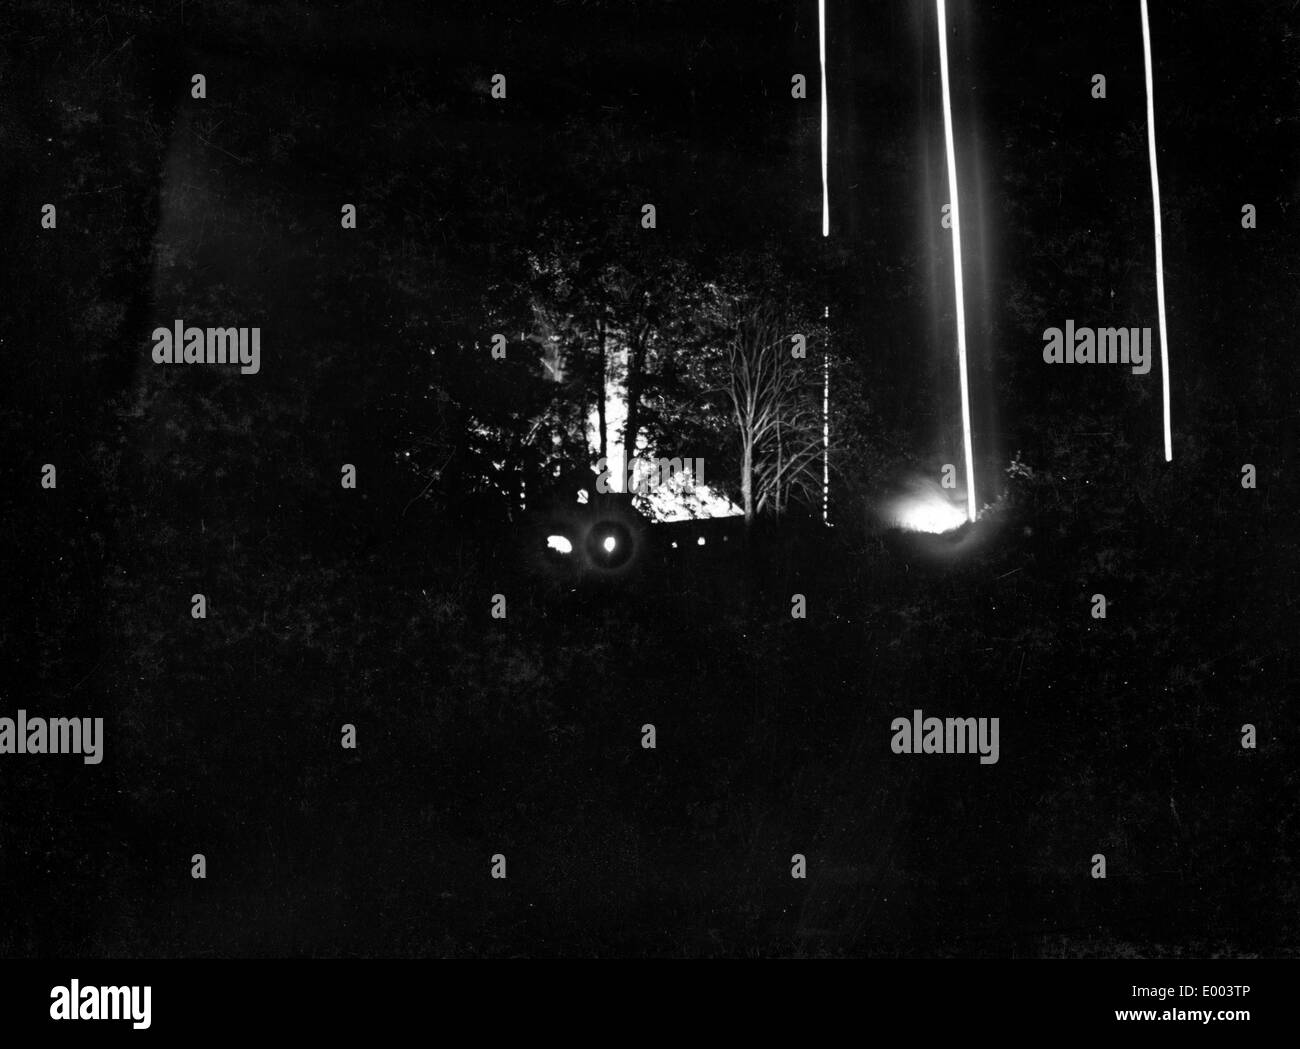 Rocket flares illuminate Russian emplacements, 1915 - Stock Image